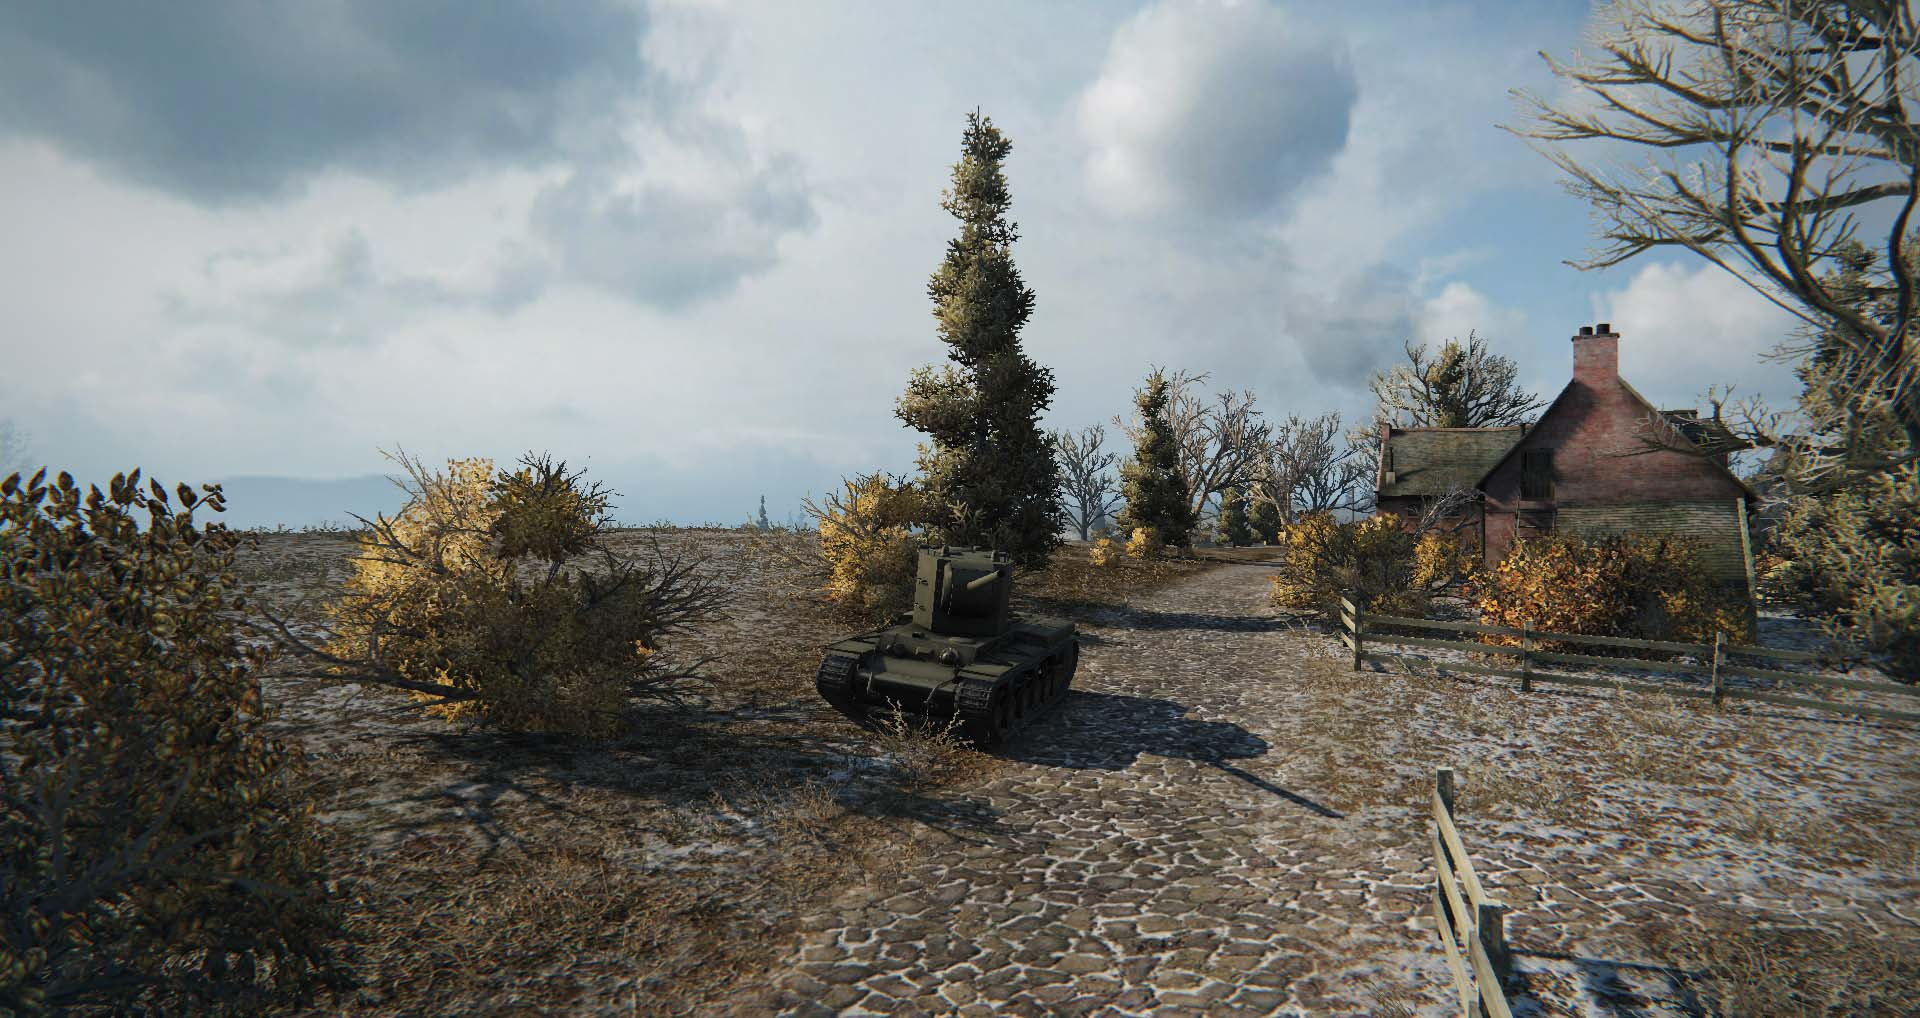 The single KV-2 managed to hold off the German advance, through sheer determination and heroism.